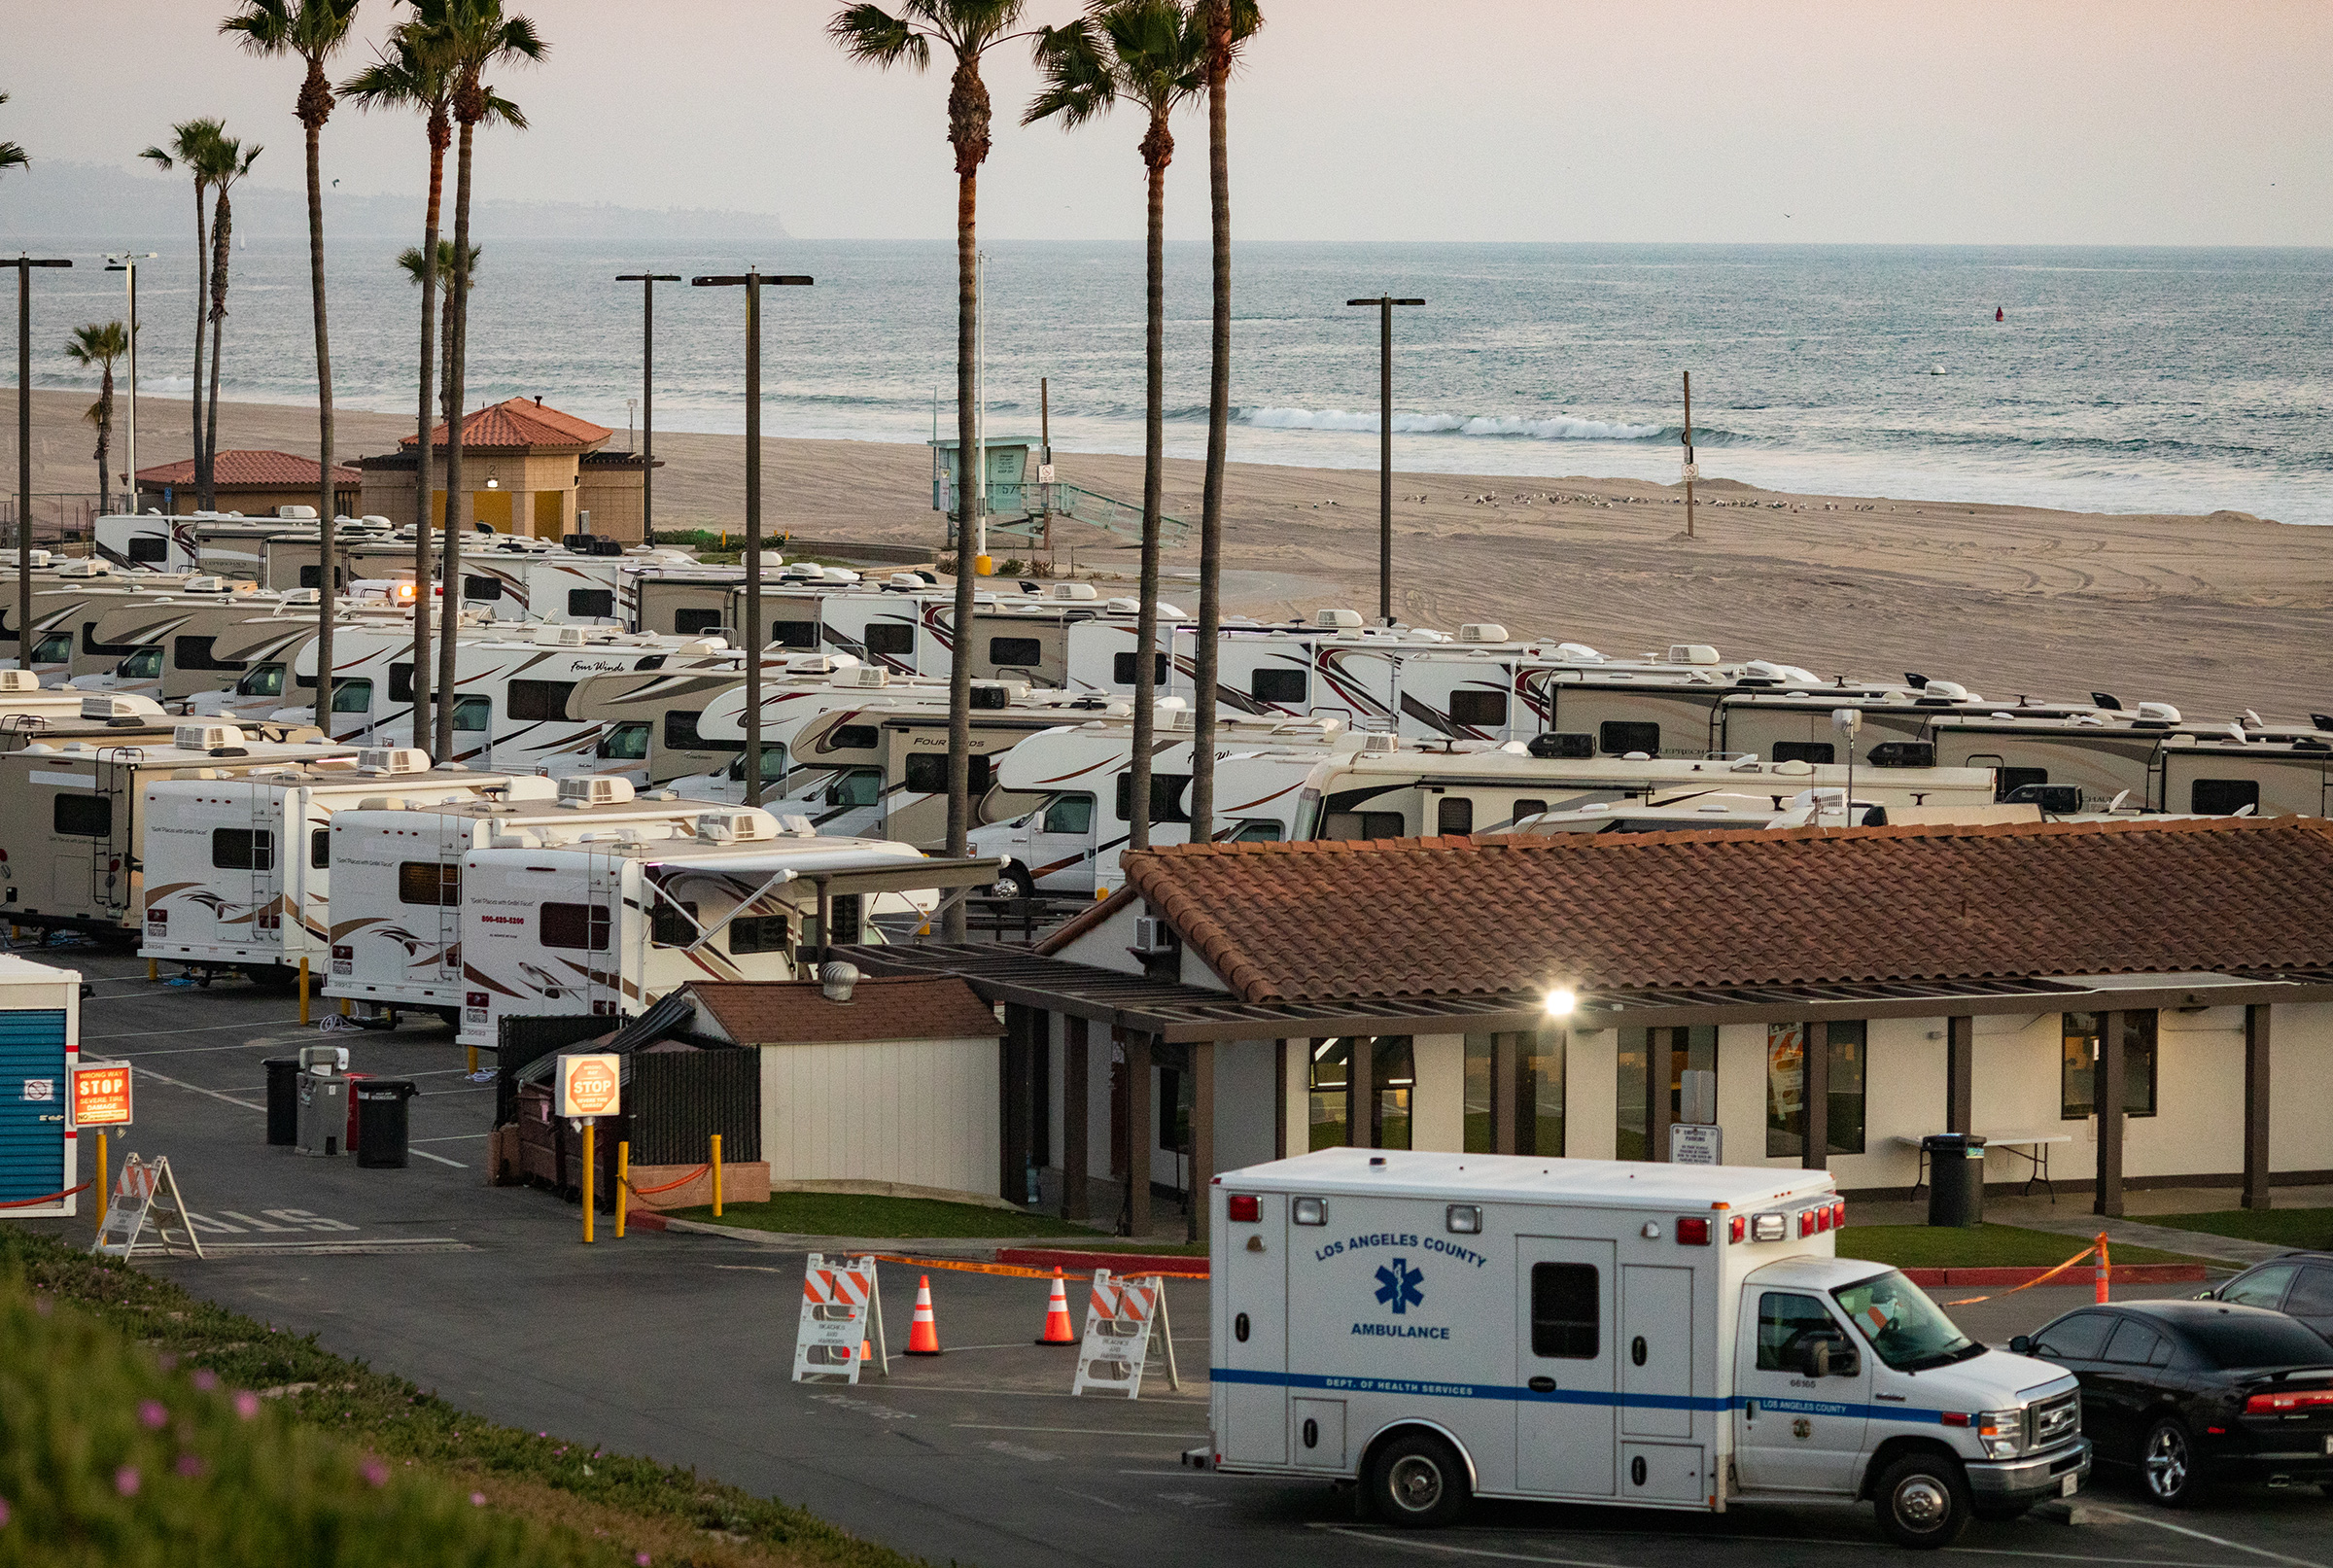 An ambulance arrives in a beachside parking lot being used with R.V's as an isolation zone for people with COVID-19, on April 1st at Dockweiler State Beach in Los Angeles, California